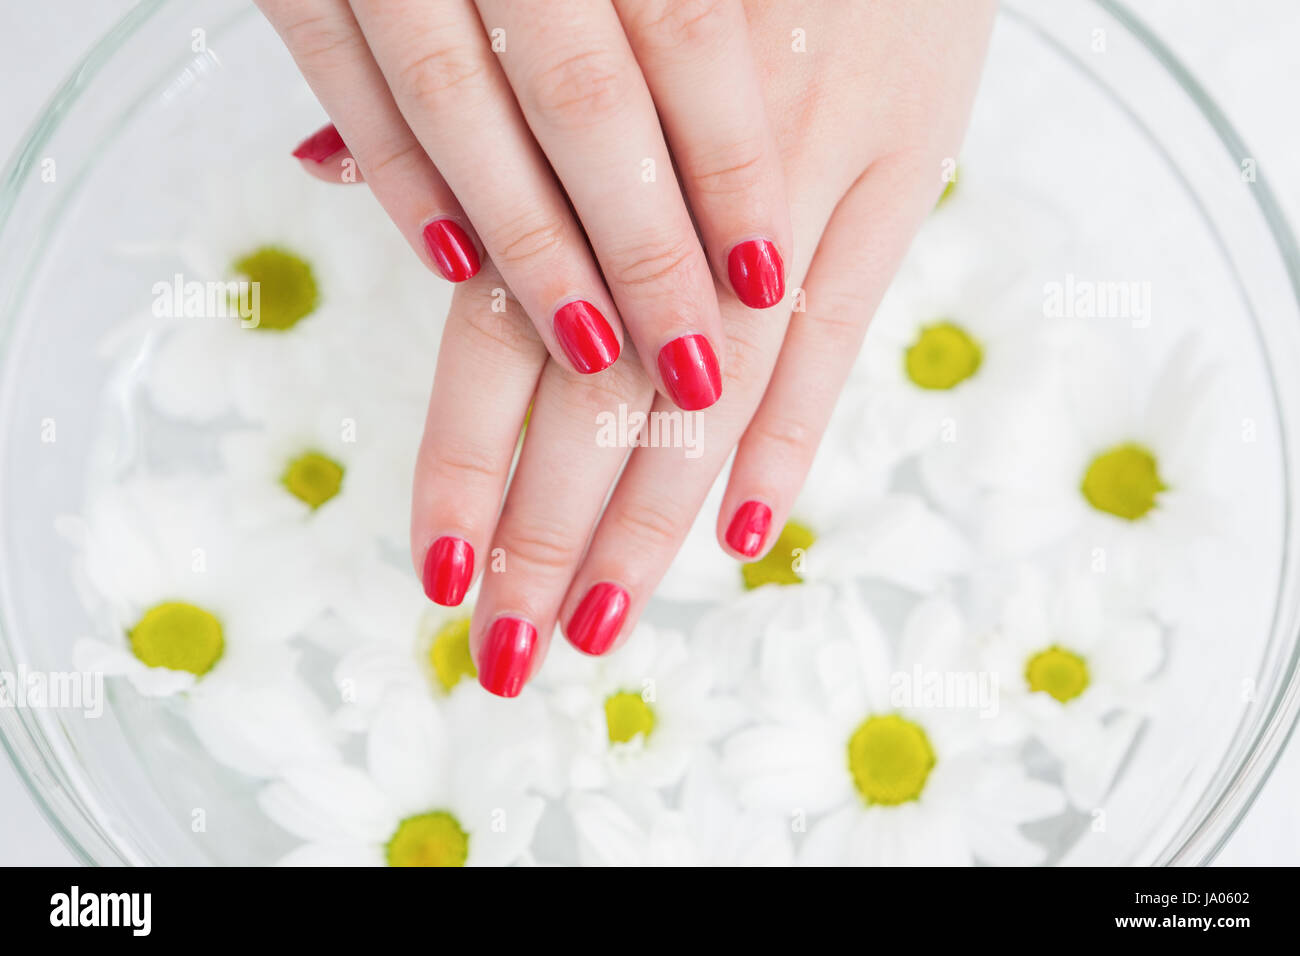 Red Painted Finger Nails Stockfotos & Red Painted Finger Nails ...